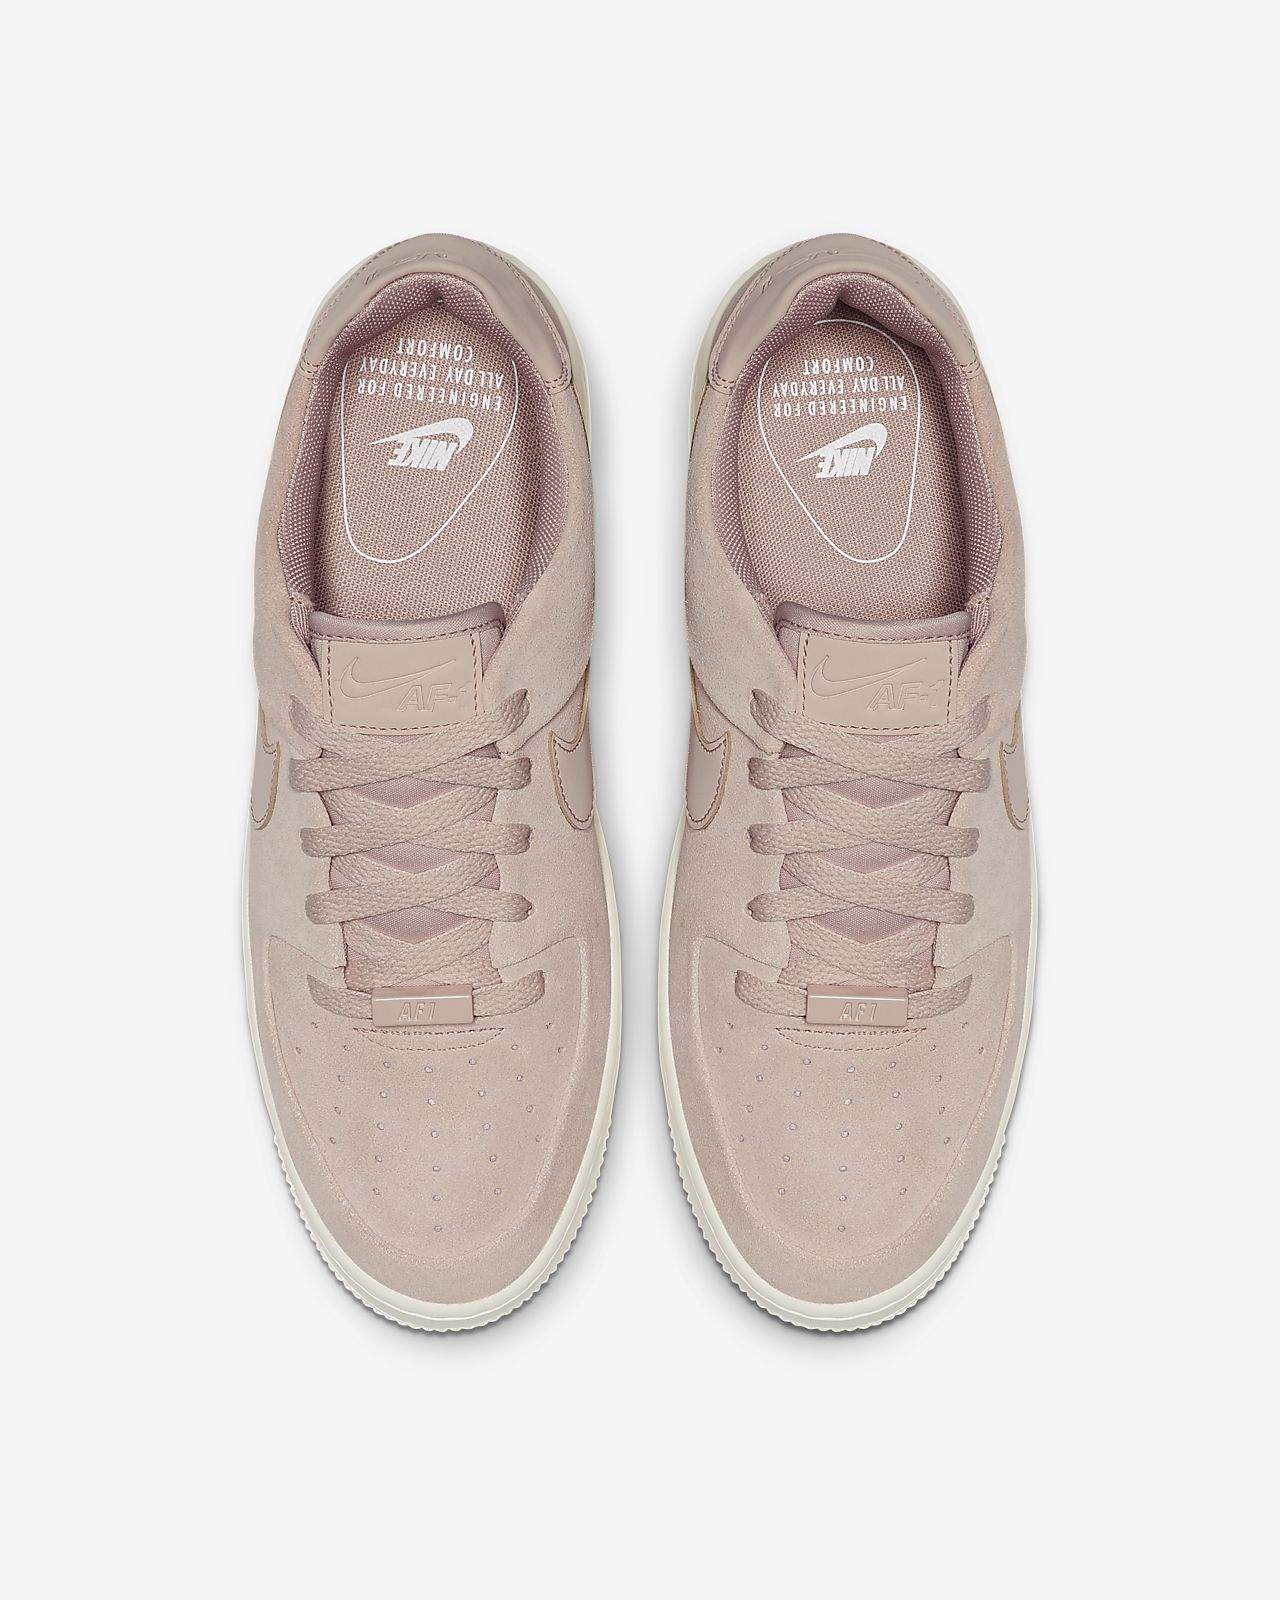 Nike Air Force 1 Shadow Pale Ivory Womens Shoes Low SNEAKERS Af1 Size 7 38